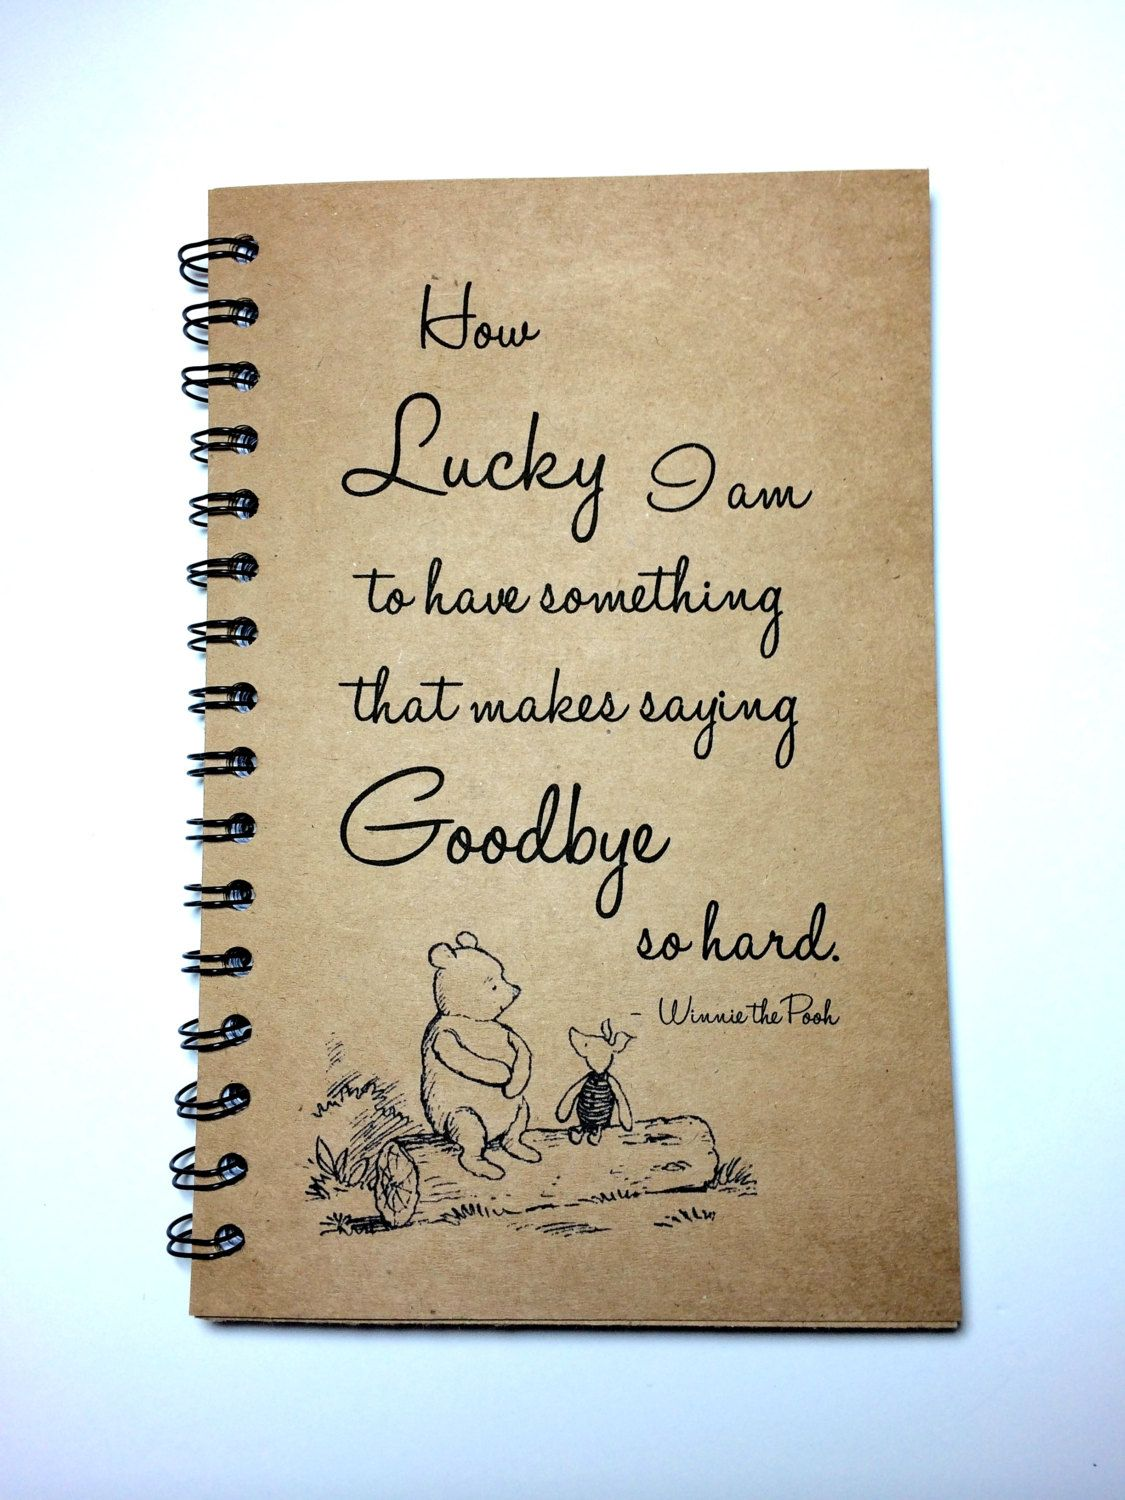 Saying Goodbye is always hard write down your memories as a